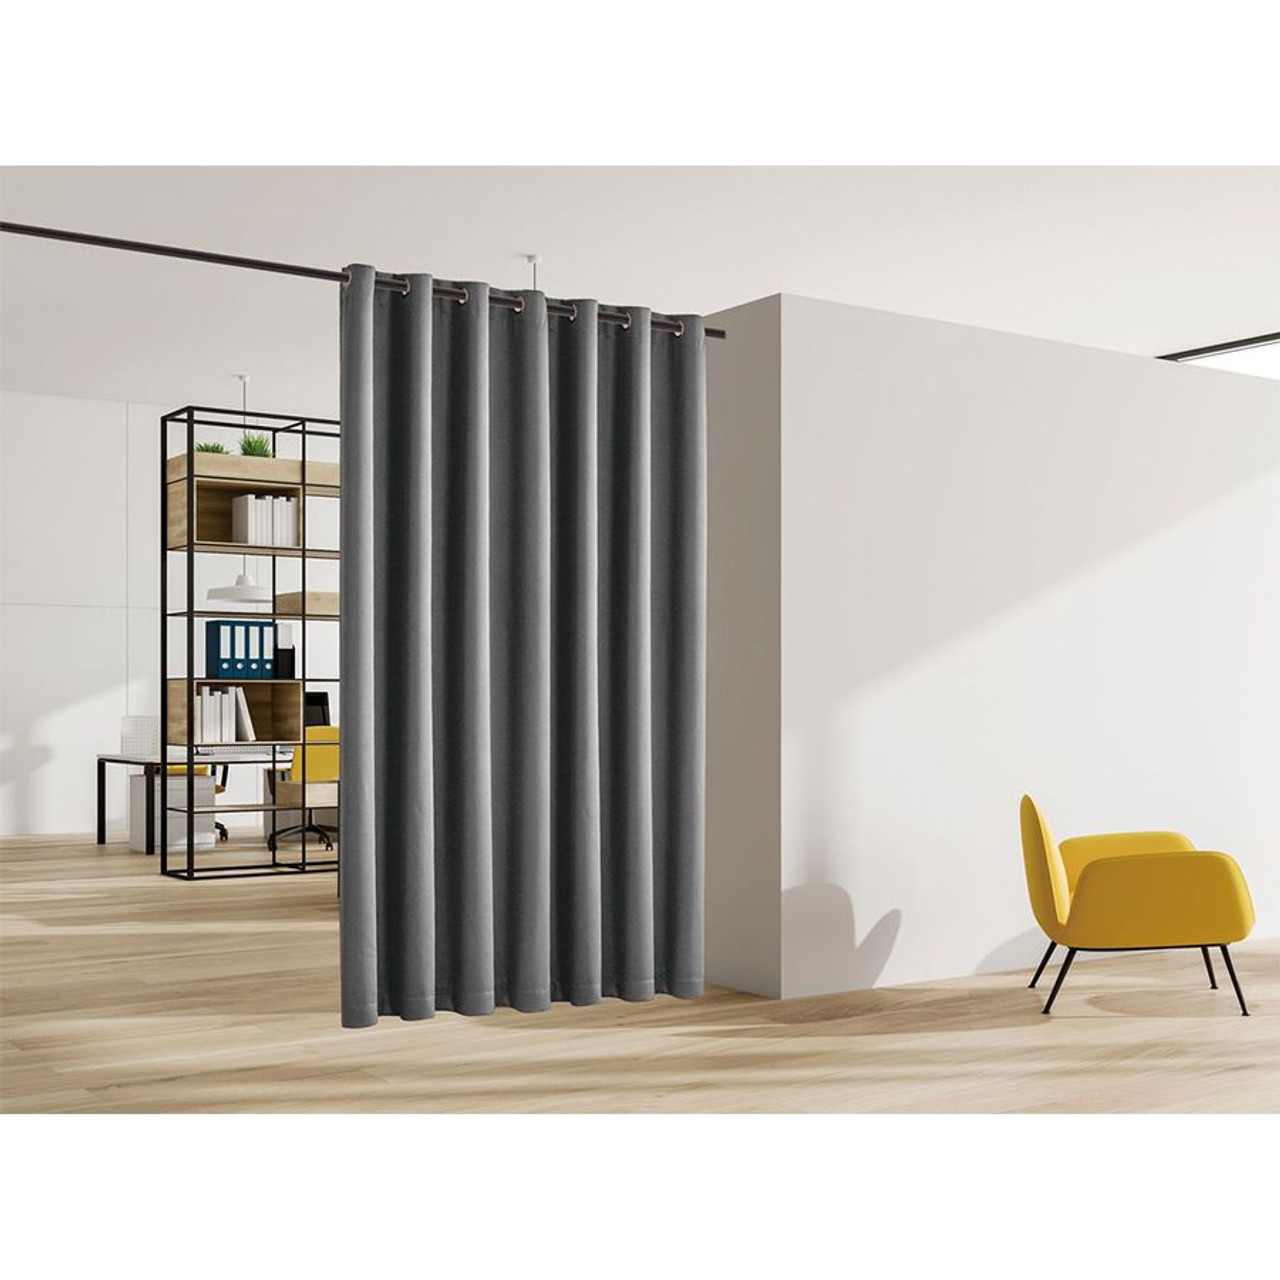 Blackout Room Divider Curtain Panel Thermal Insulated  Grey Color